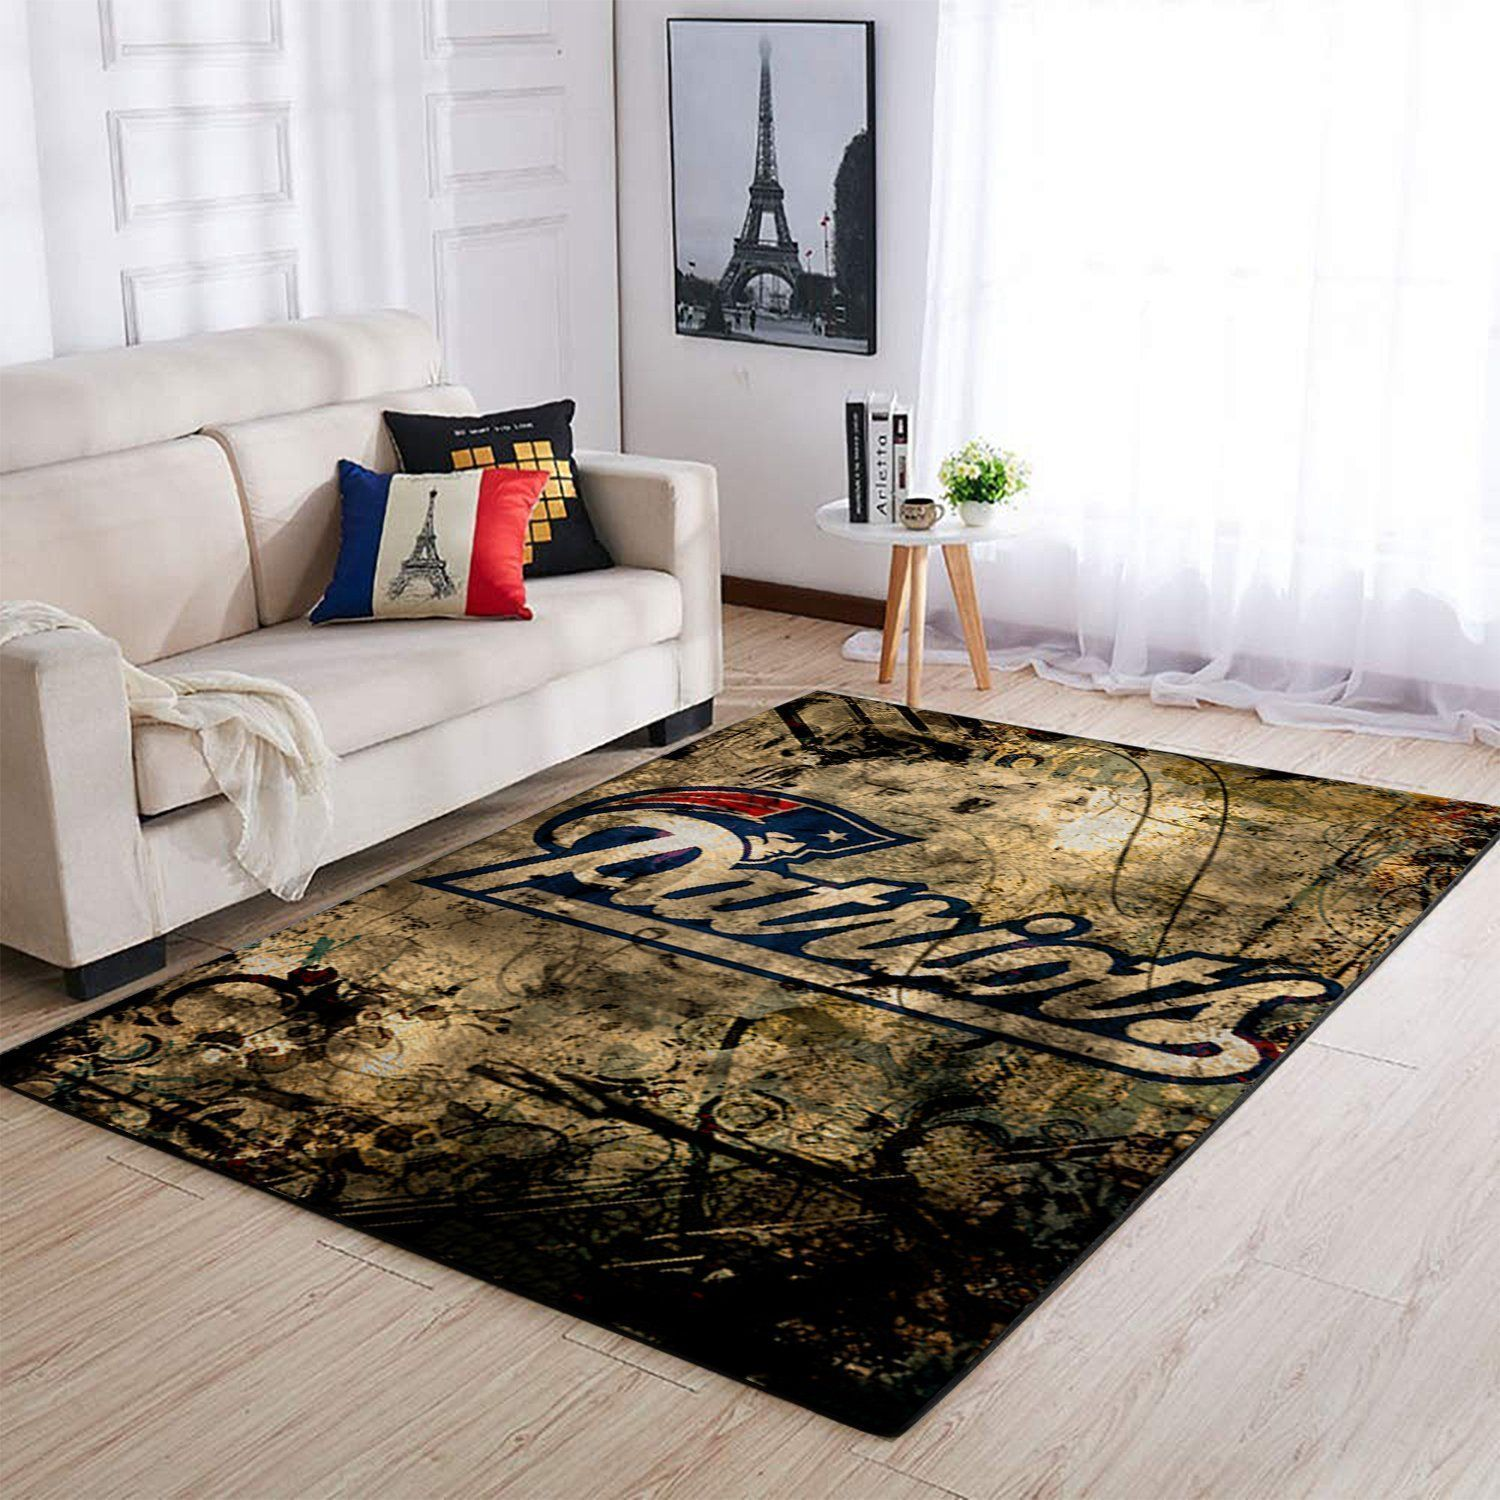 New England Patriots Area Rugs NFL Football Living Room Carpet Team Logo Custom Floor Home Decor 191007